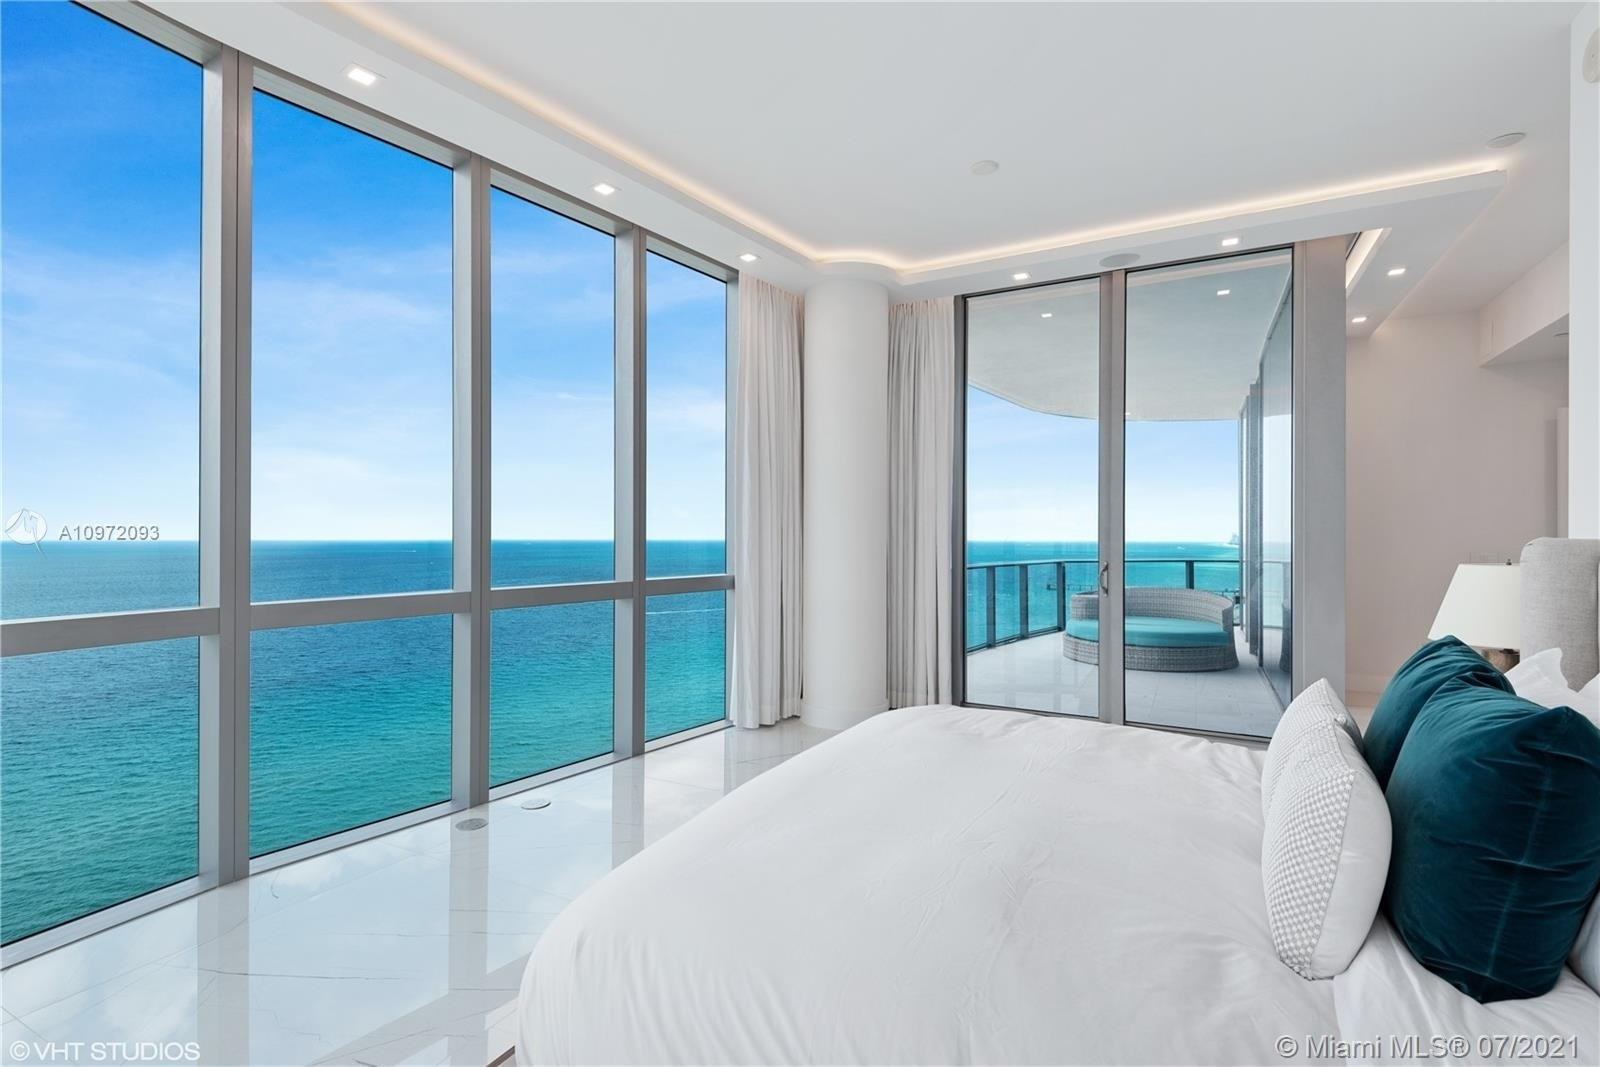 19. Condominiums for Sale at 17475 Collins Ave , 1501 Sunny Isles Beach, FL 33160